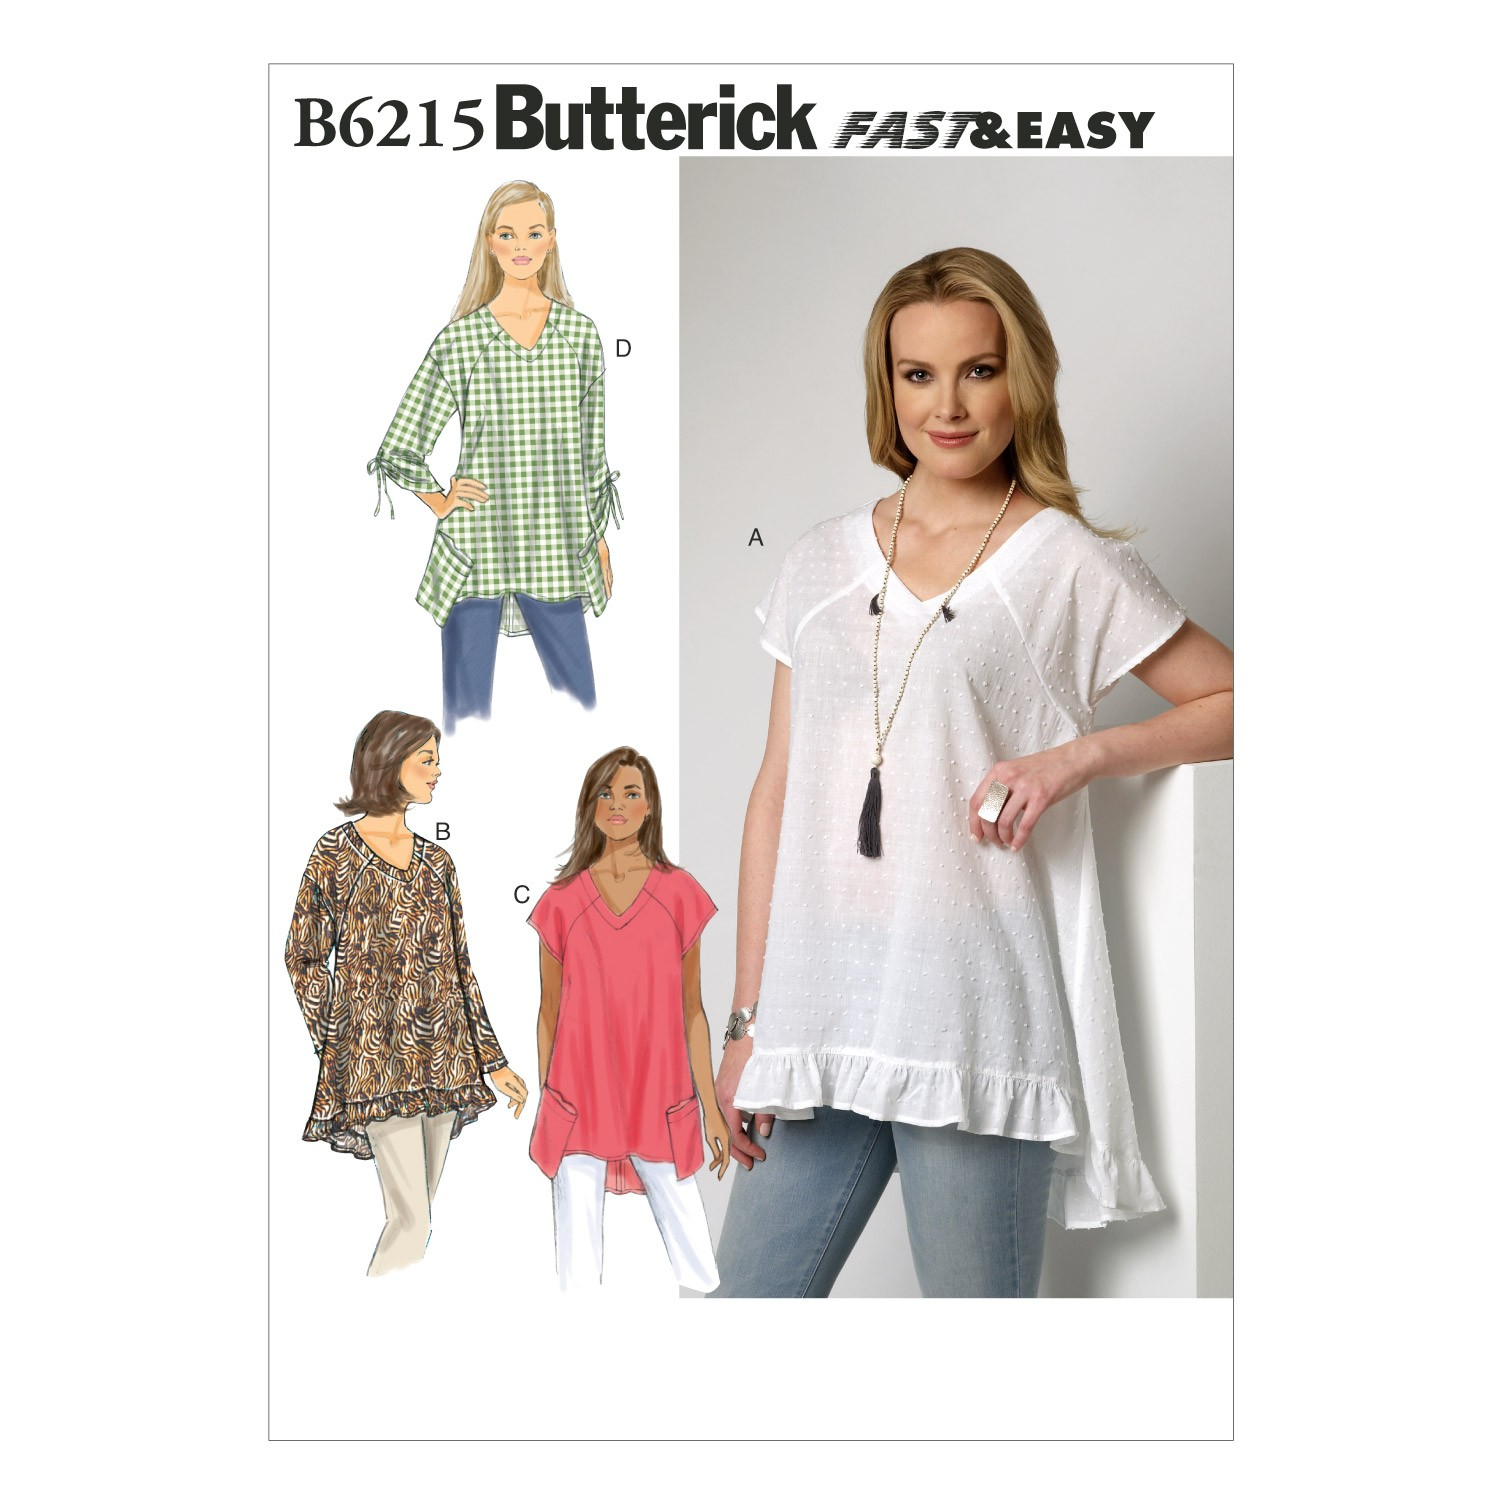 Butterick Sewing Pattern 6215 Misses' Very Loose Fitting Top & Tunic